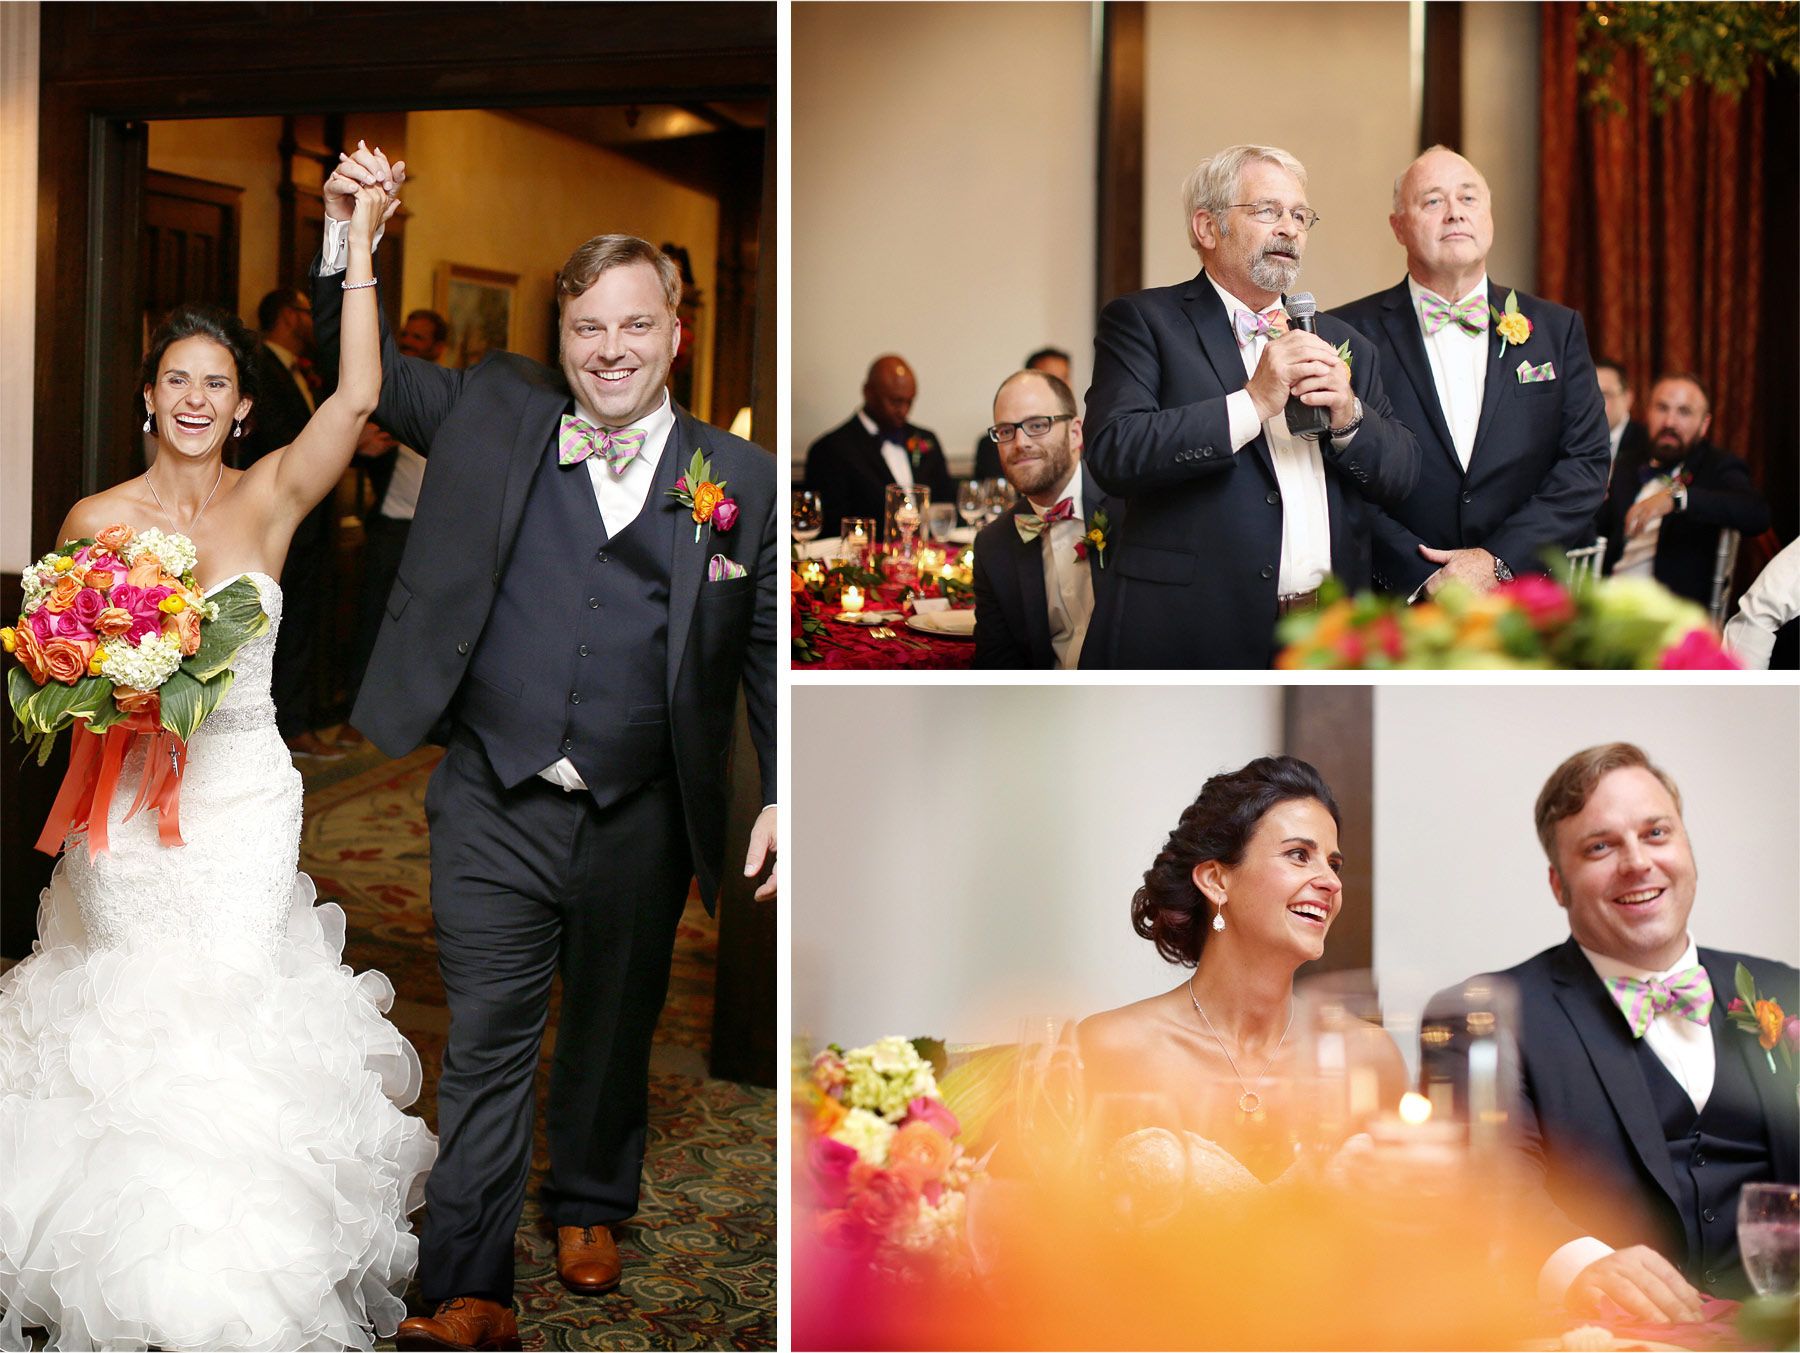 23-Saint-Paul-Minnesota-Wedding-Photographer-by-Andrew-Vick-Photography-Summer-Reception-Town-and-Country-Club-Bride-Groom-Speeches-Toasts-Lindsay-and-Dustin.jpg